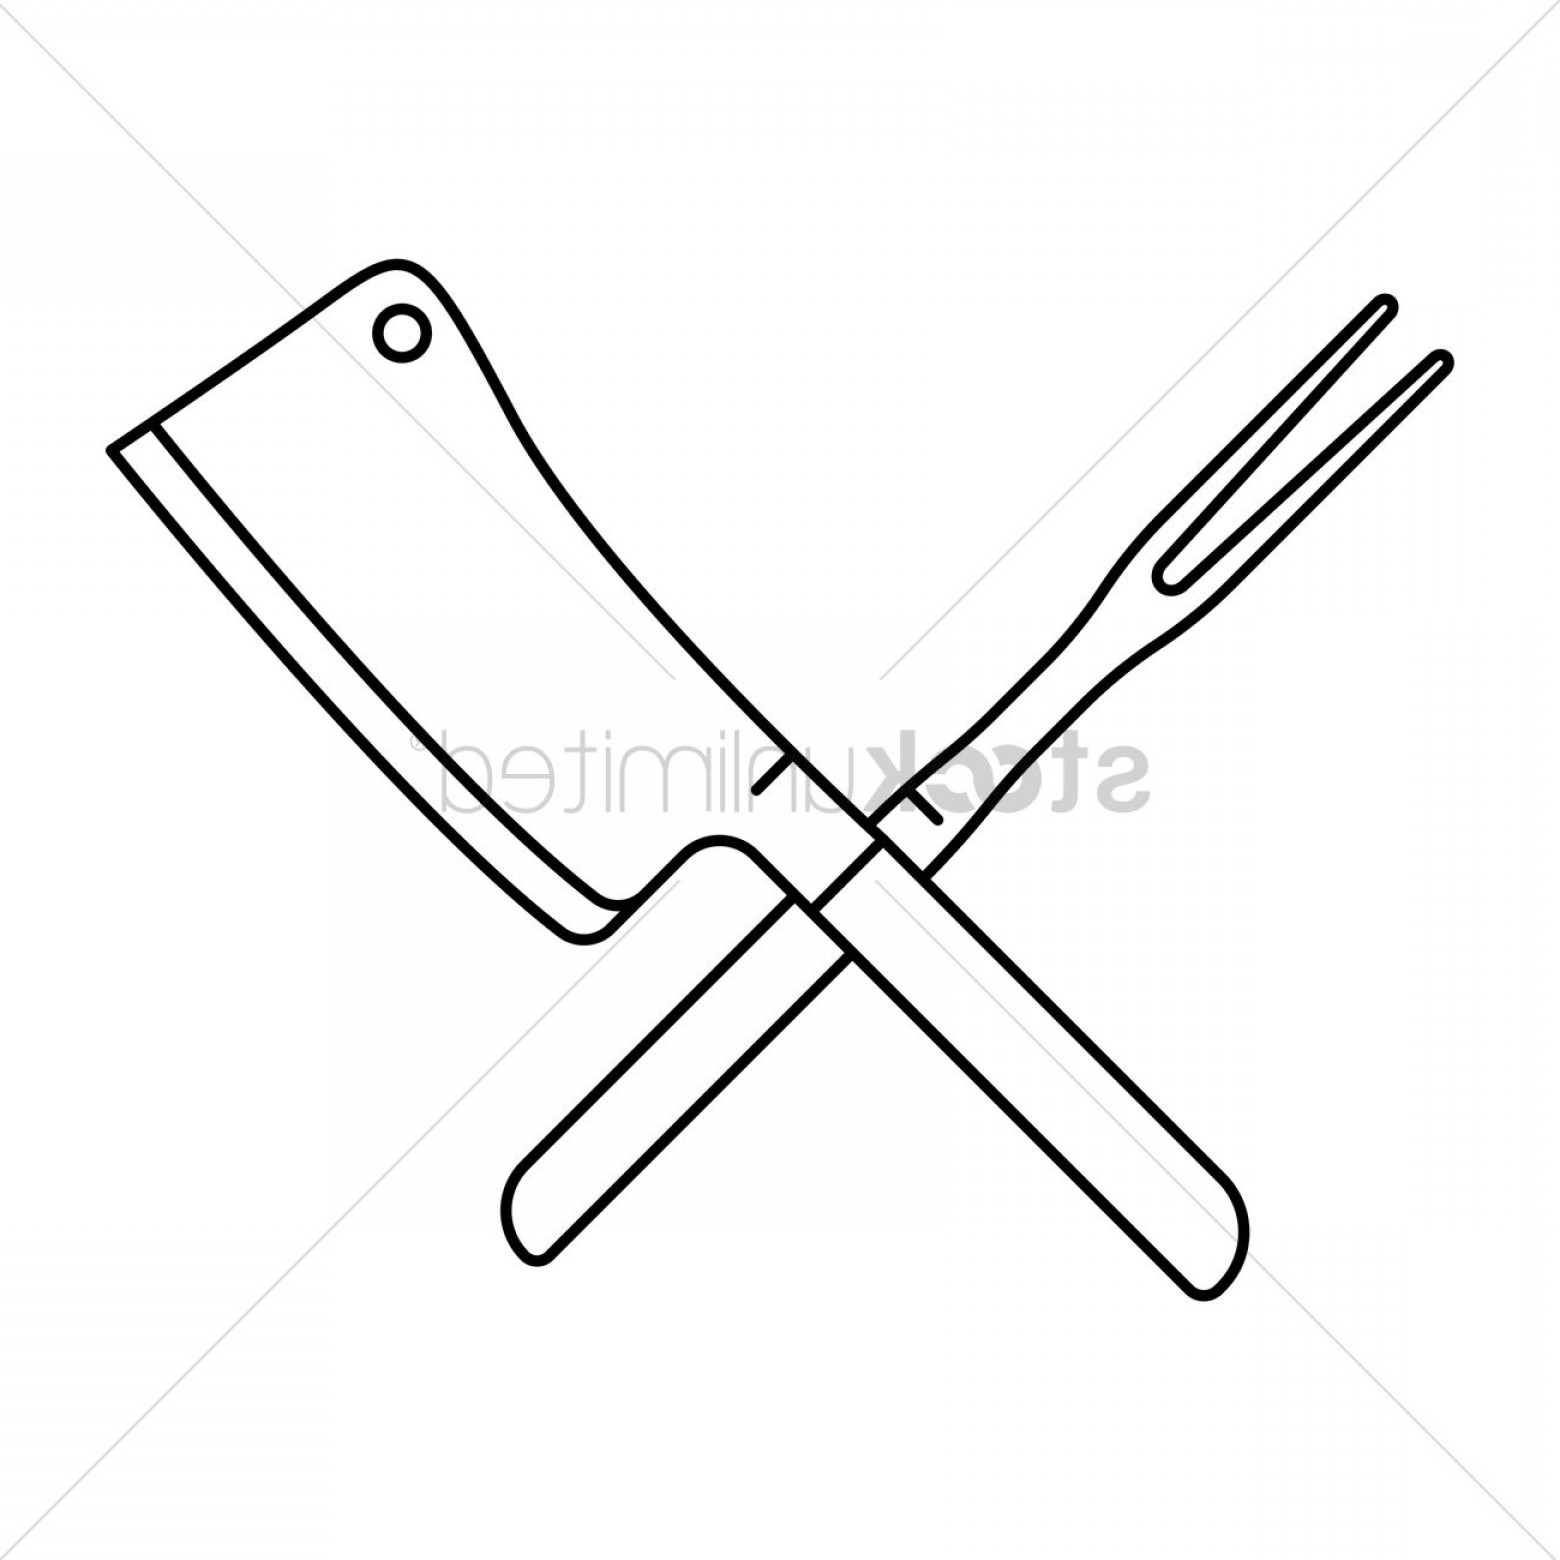 Butcher Knife Vector: Crossed Steak Fork And Butcher Knife